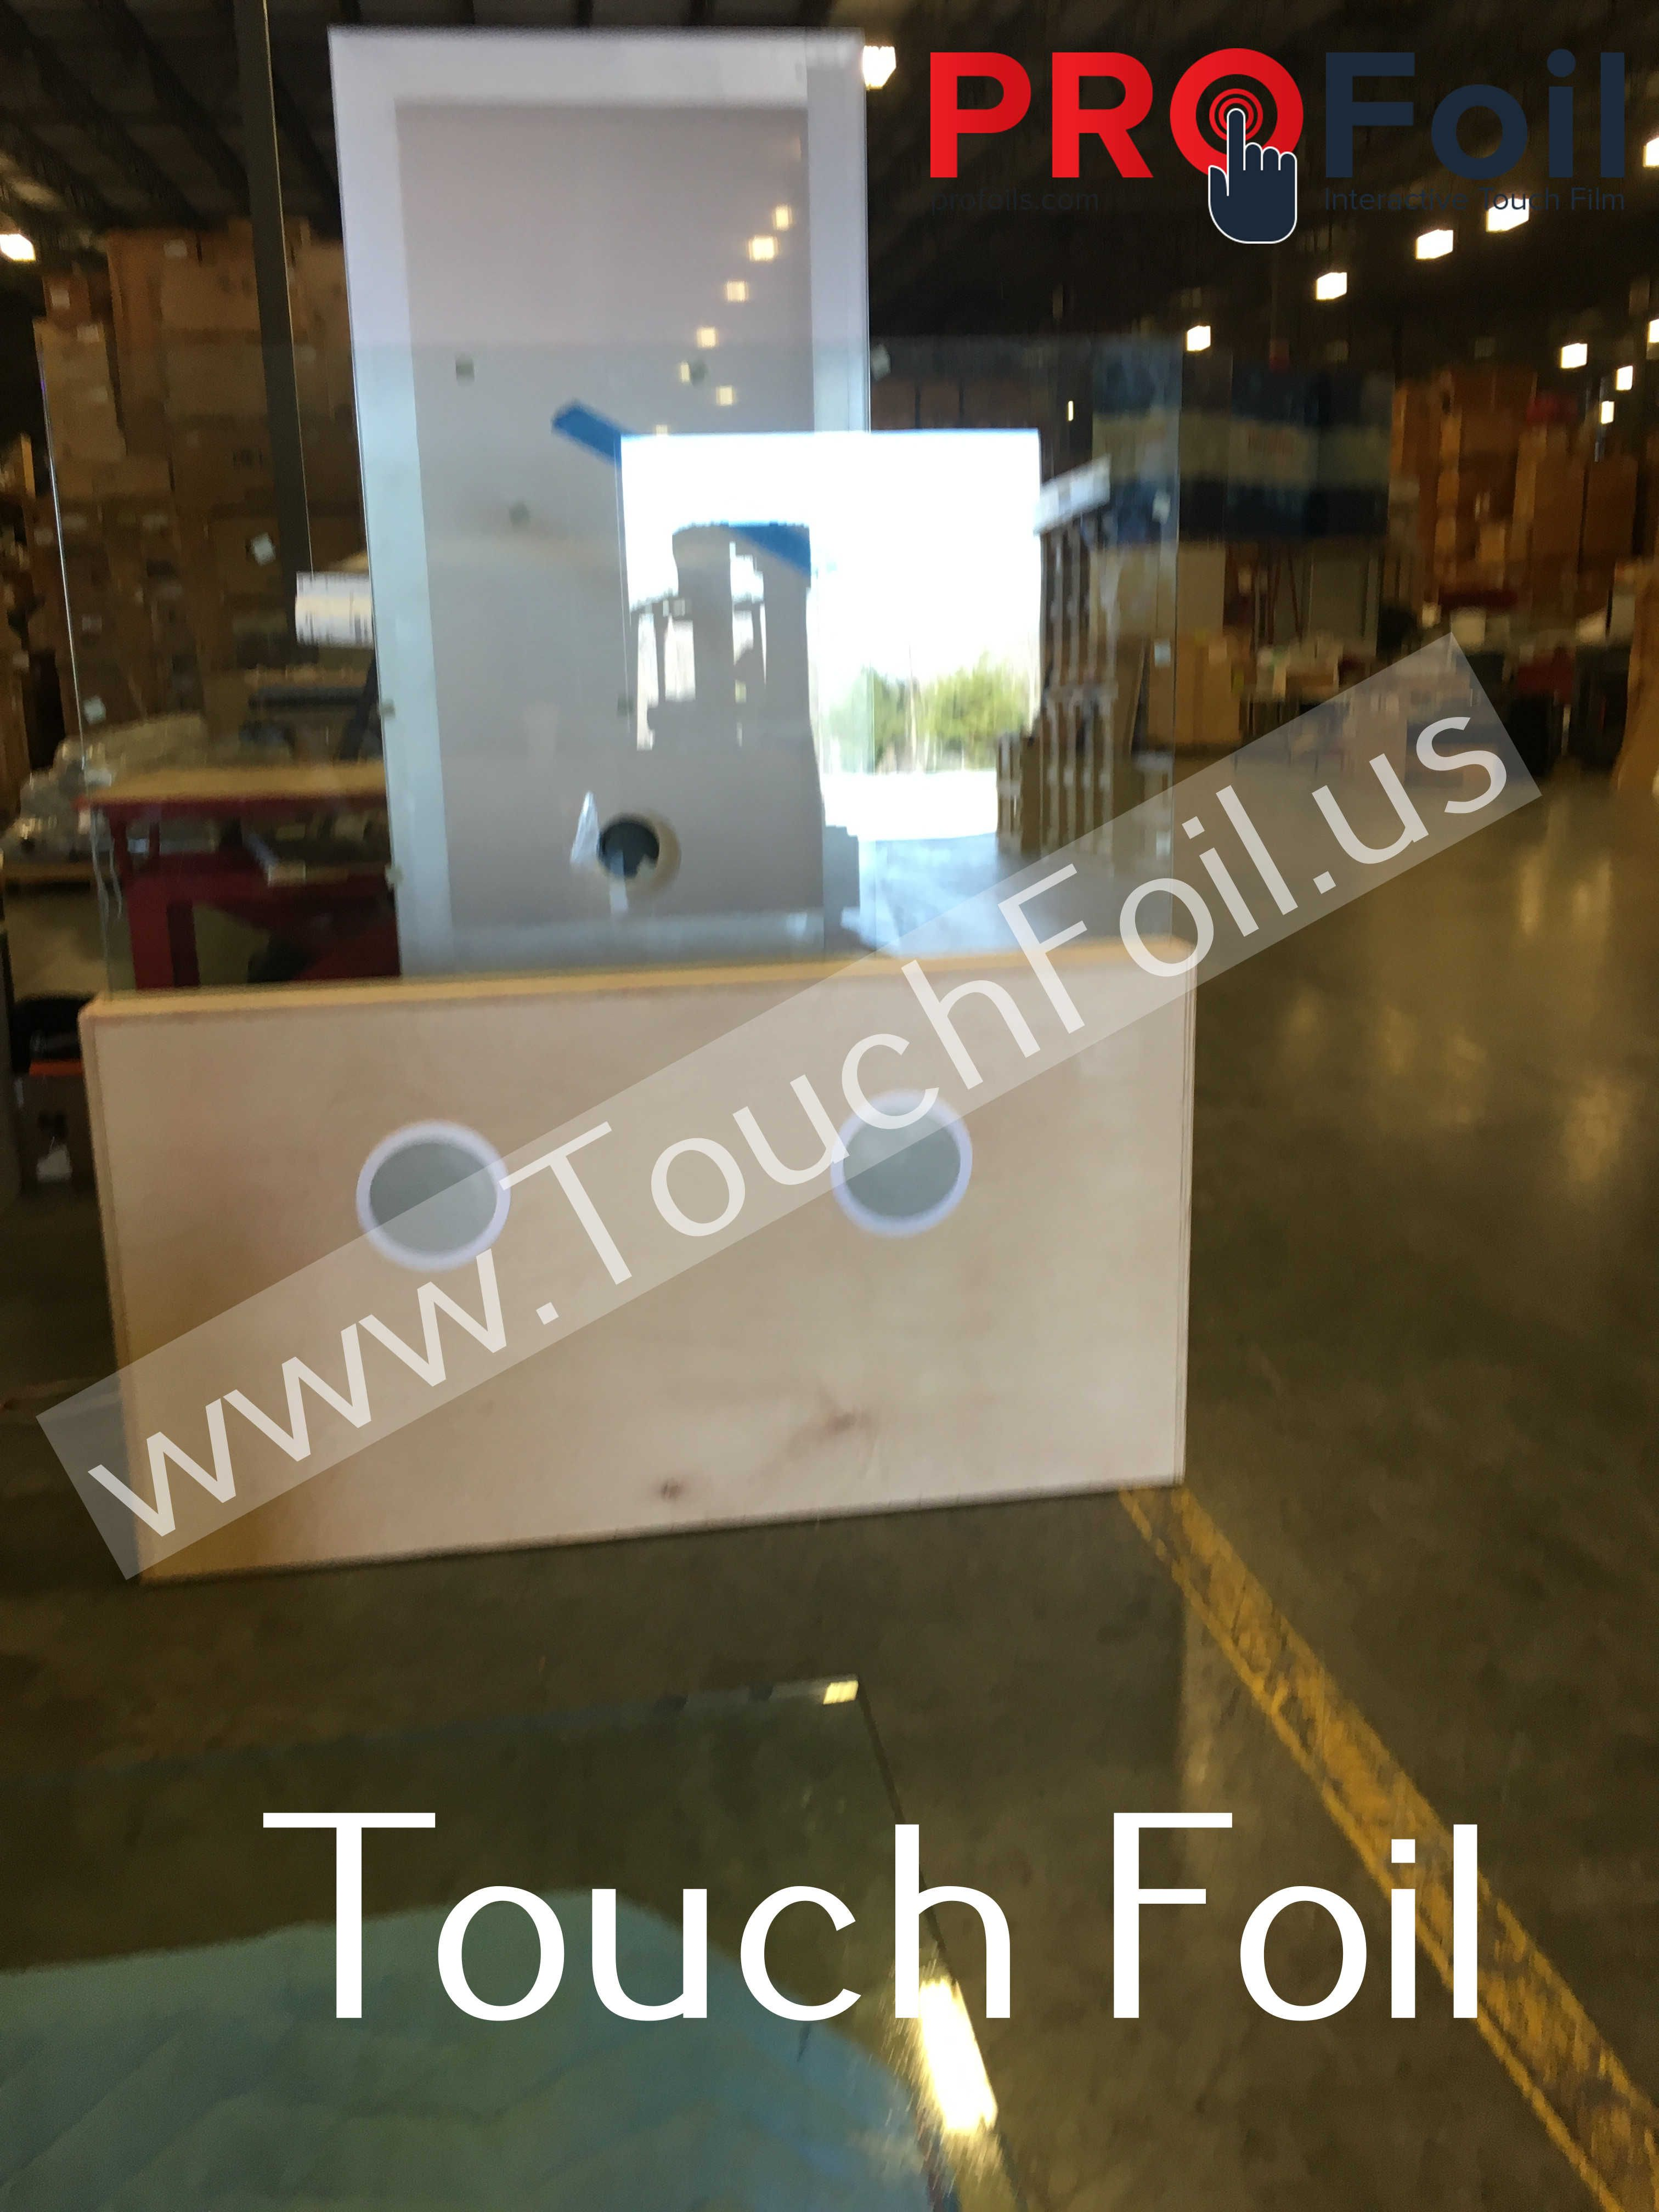 TouchFoil.us - Interactive Touch Screens on Glass #touchscreendisplay